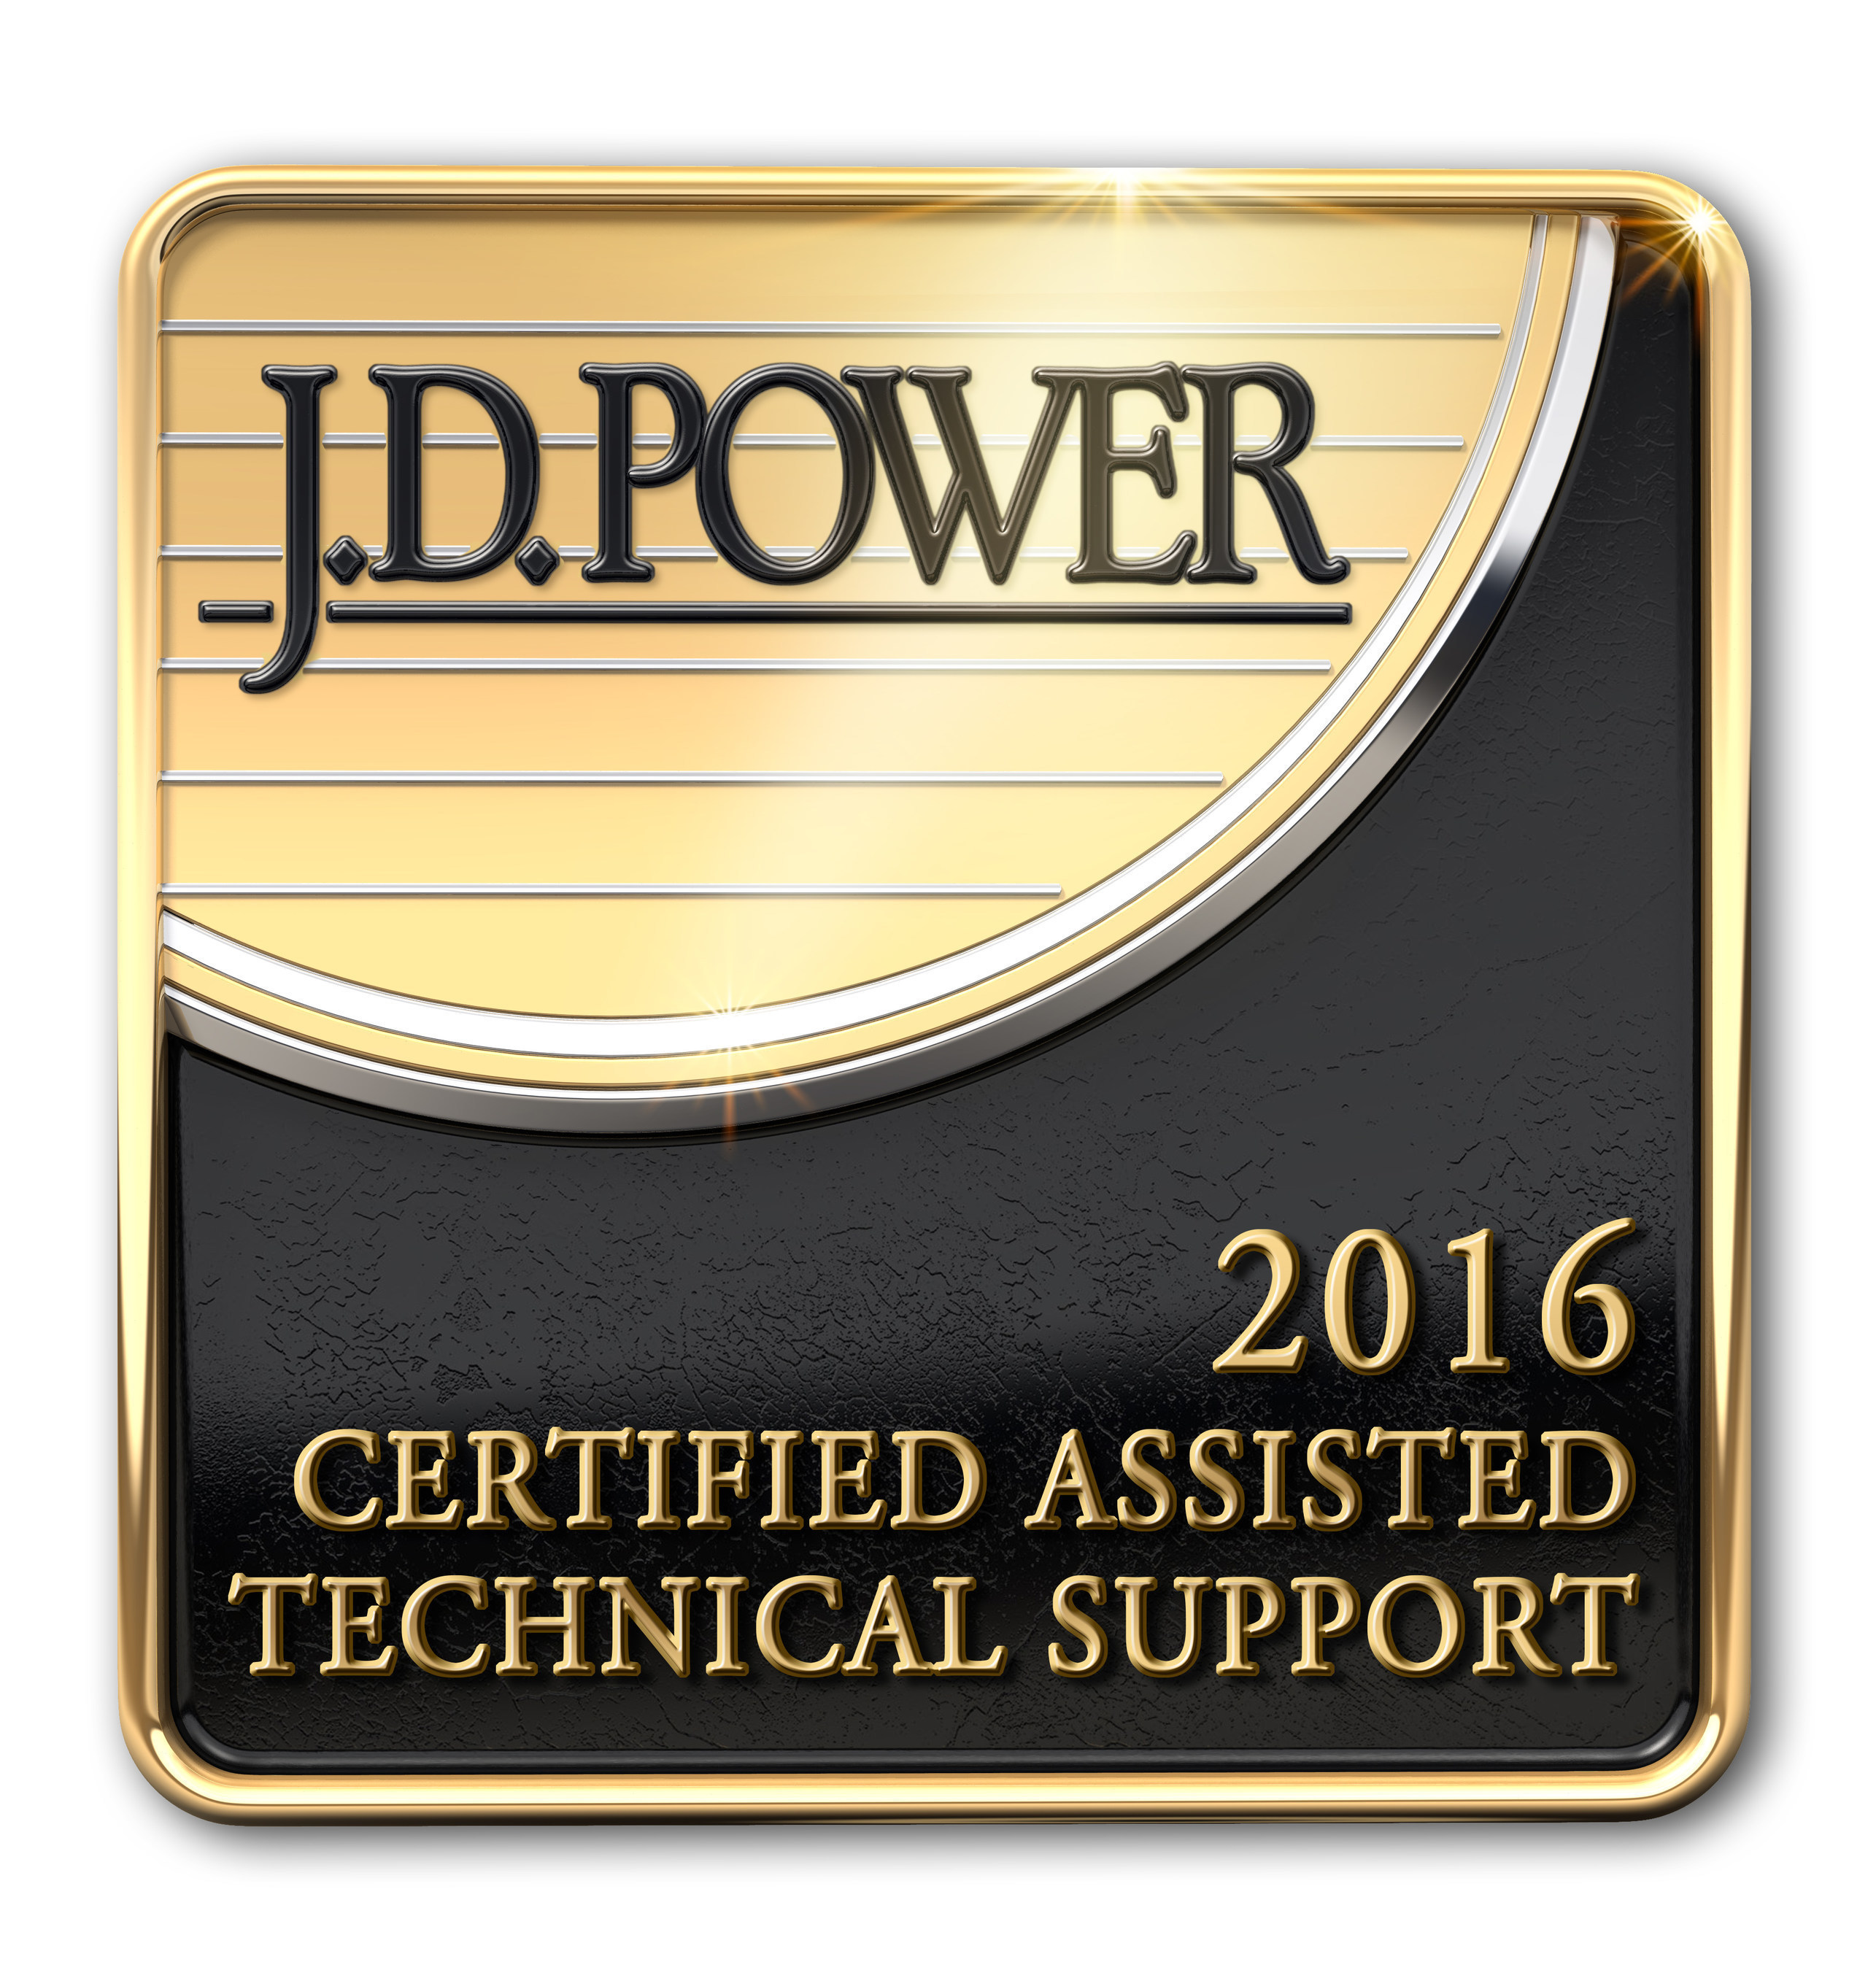 Jd Power Certifies Intermedia For Excellence In Assisted Technical